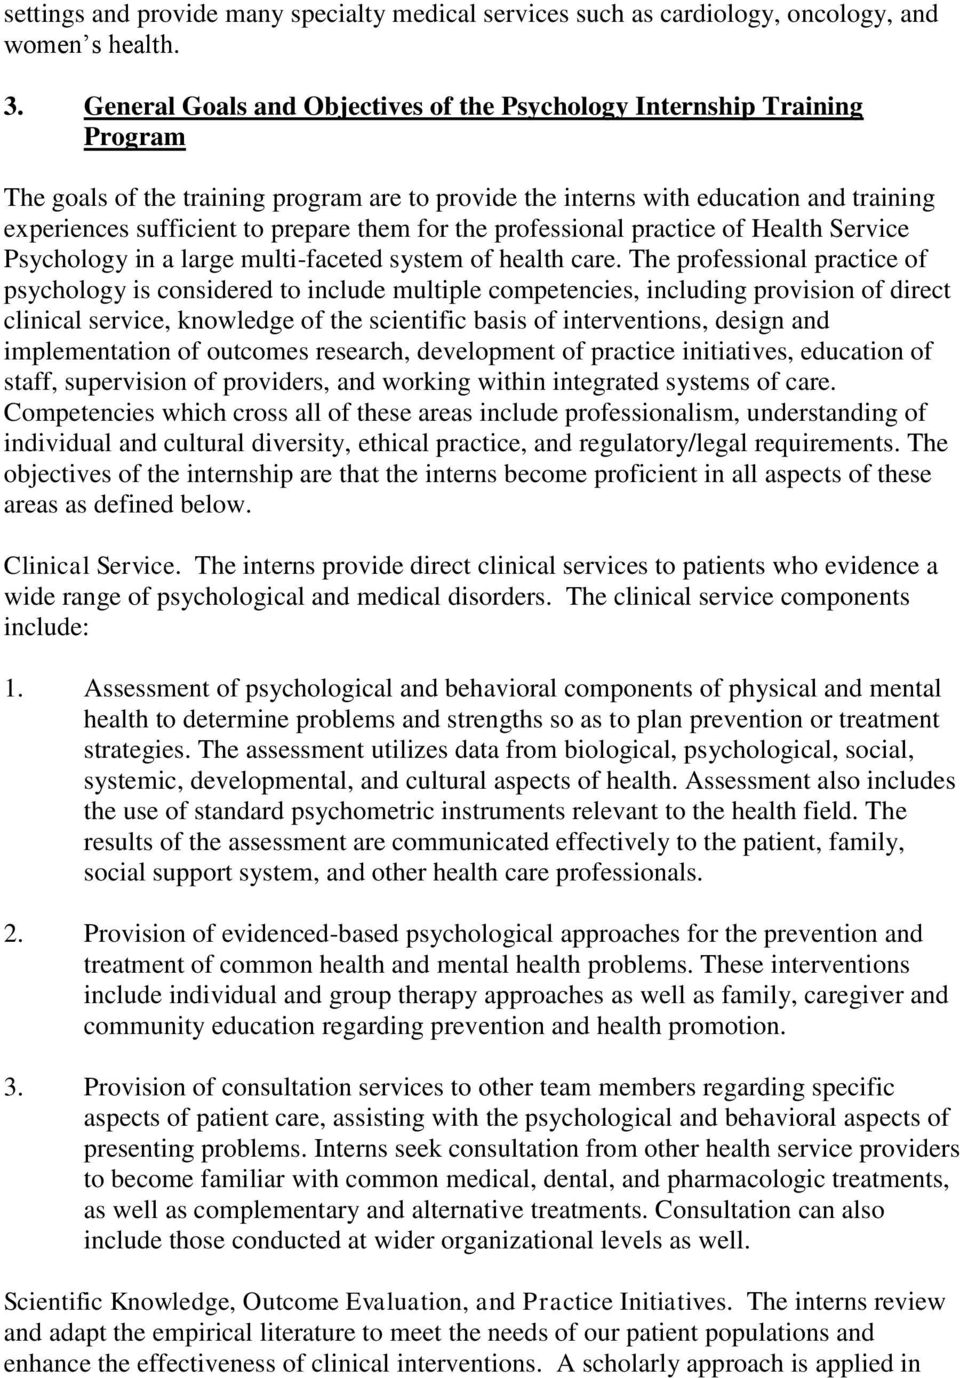 them for the professional practice of Health Service Psychology in a large multi-faceted system of health care.